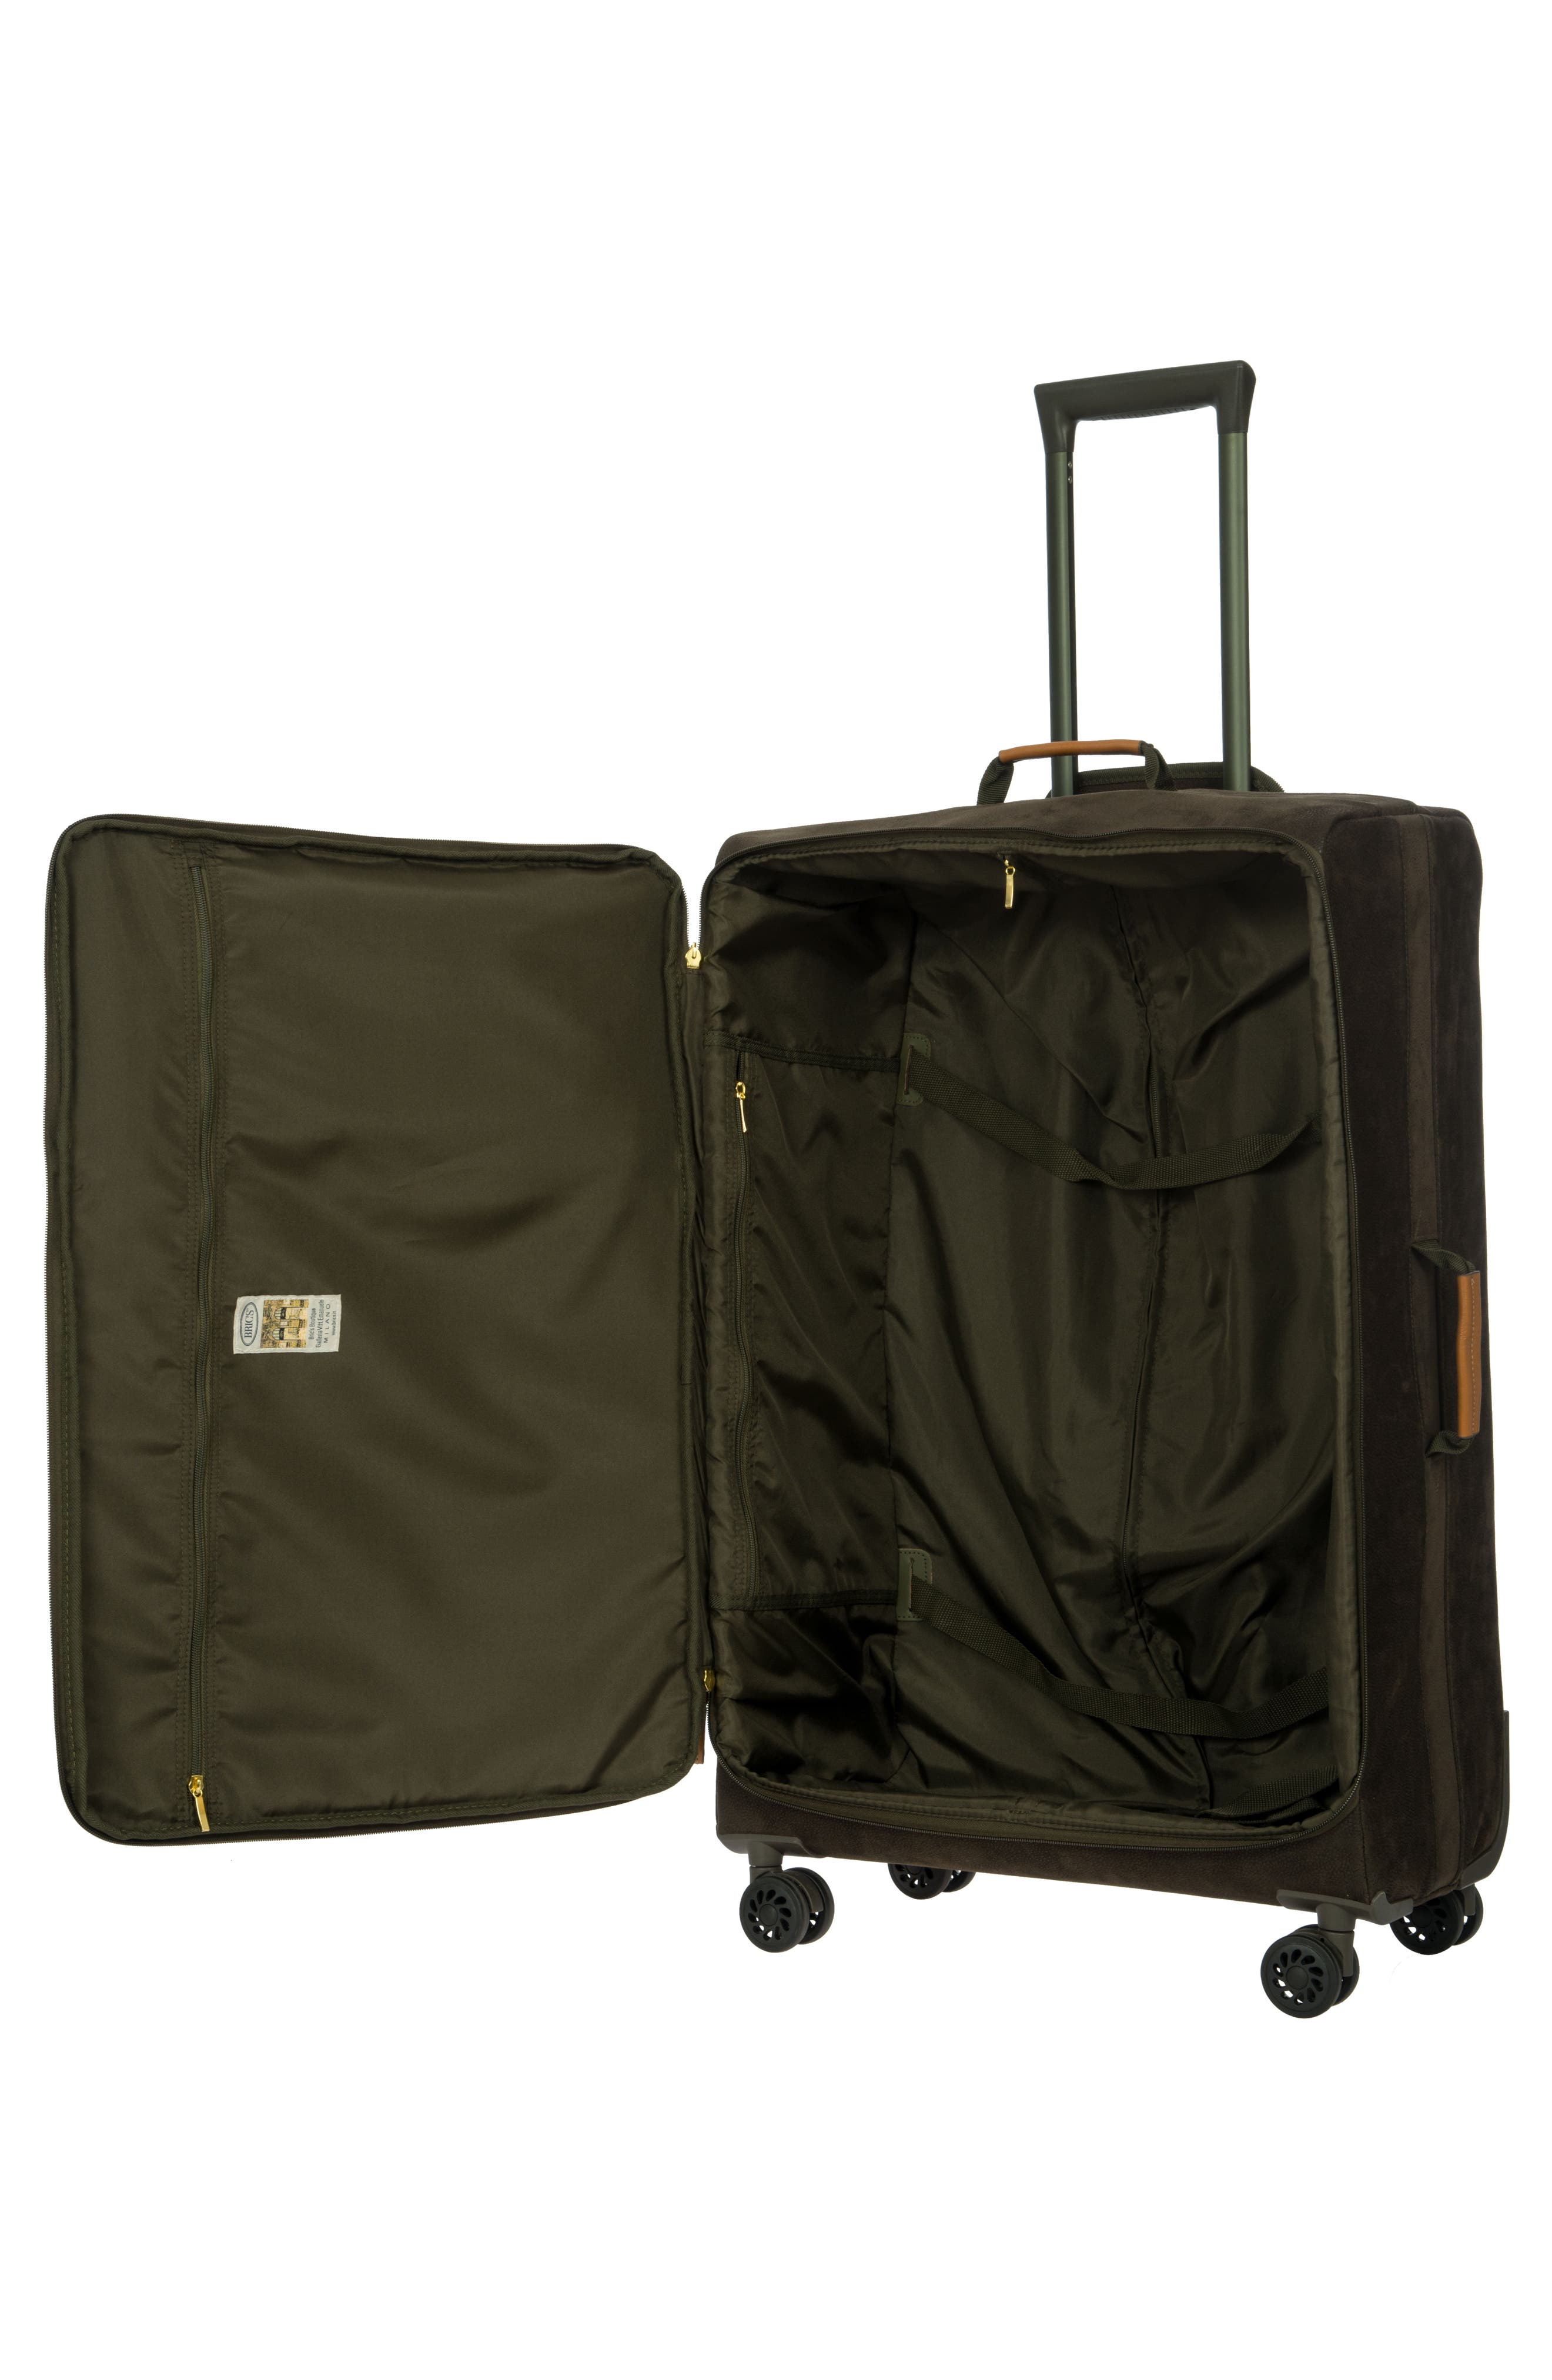 LIFE Collection 30-Inch Wheeled Suitcase,                             Alternate thumbnail 2, color,                             Olive